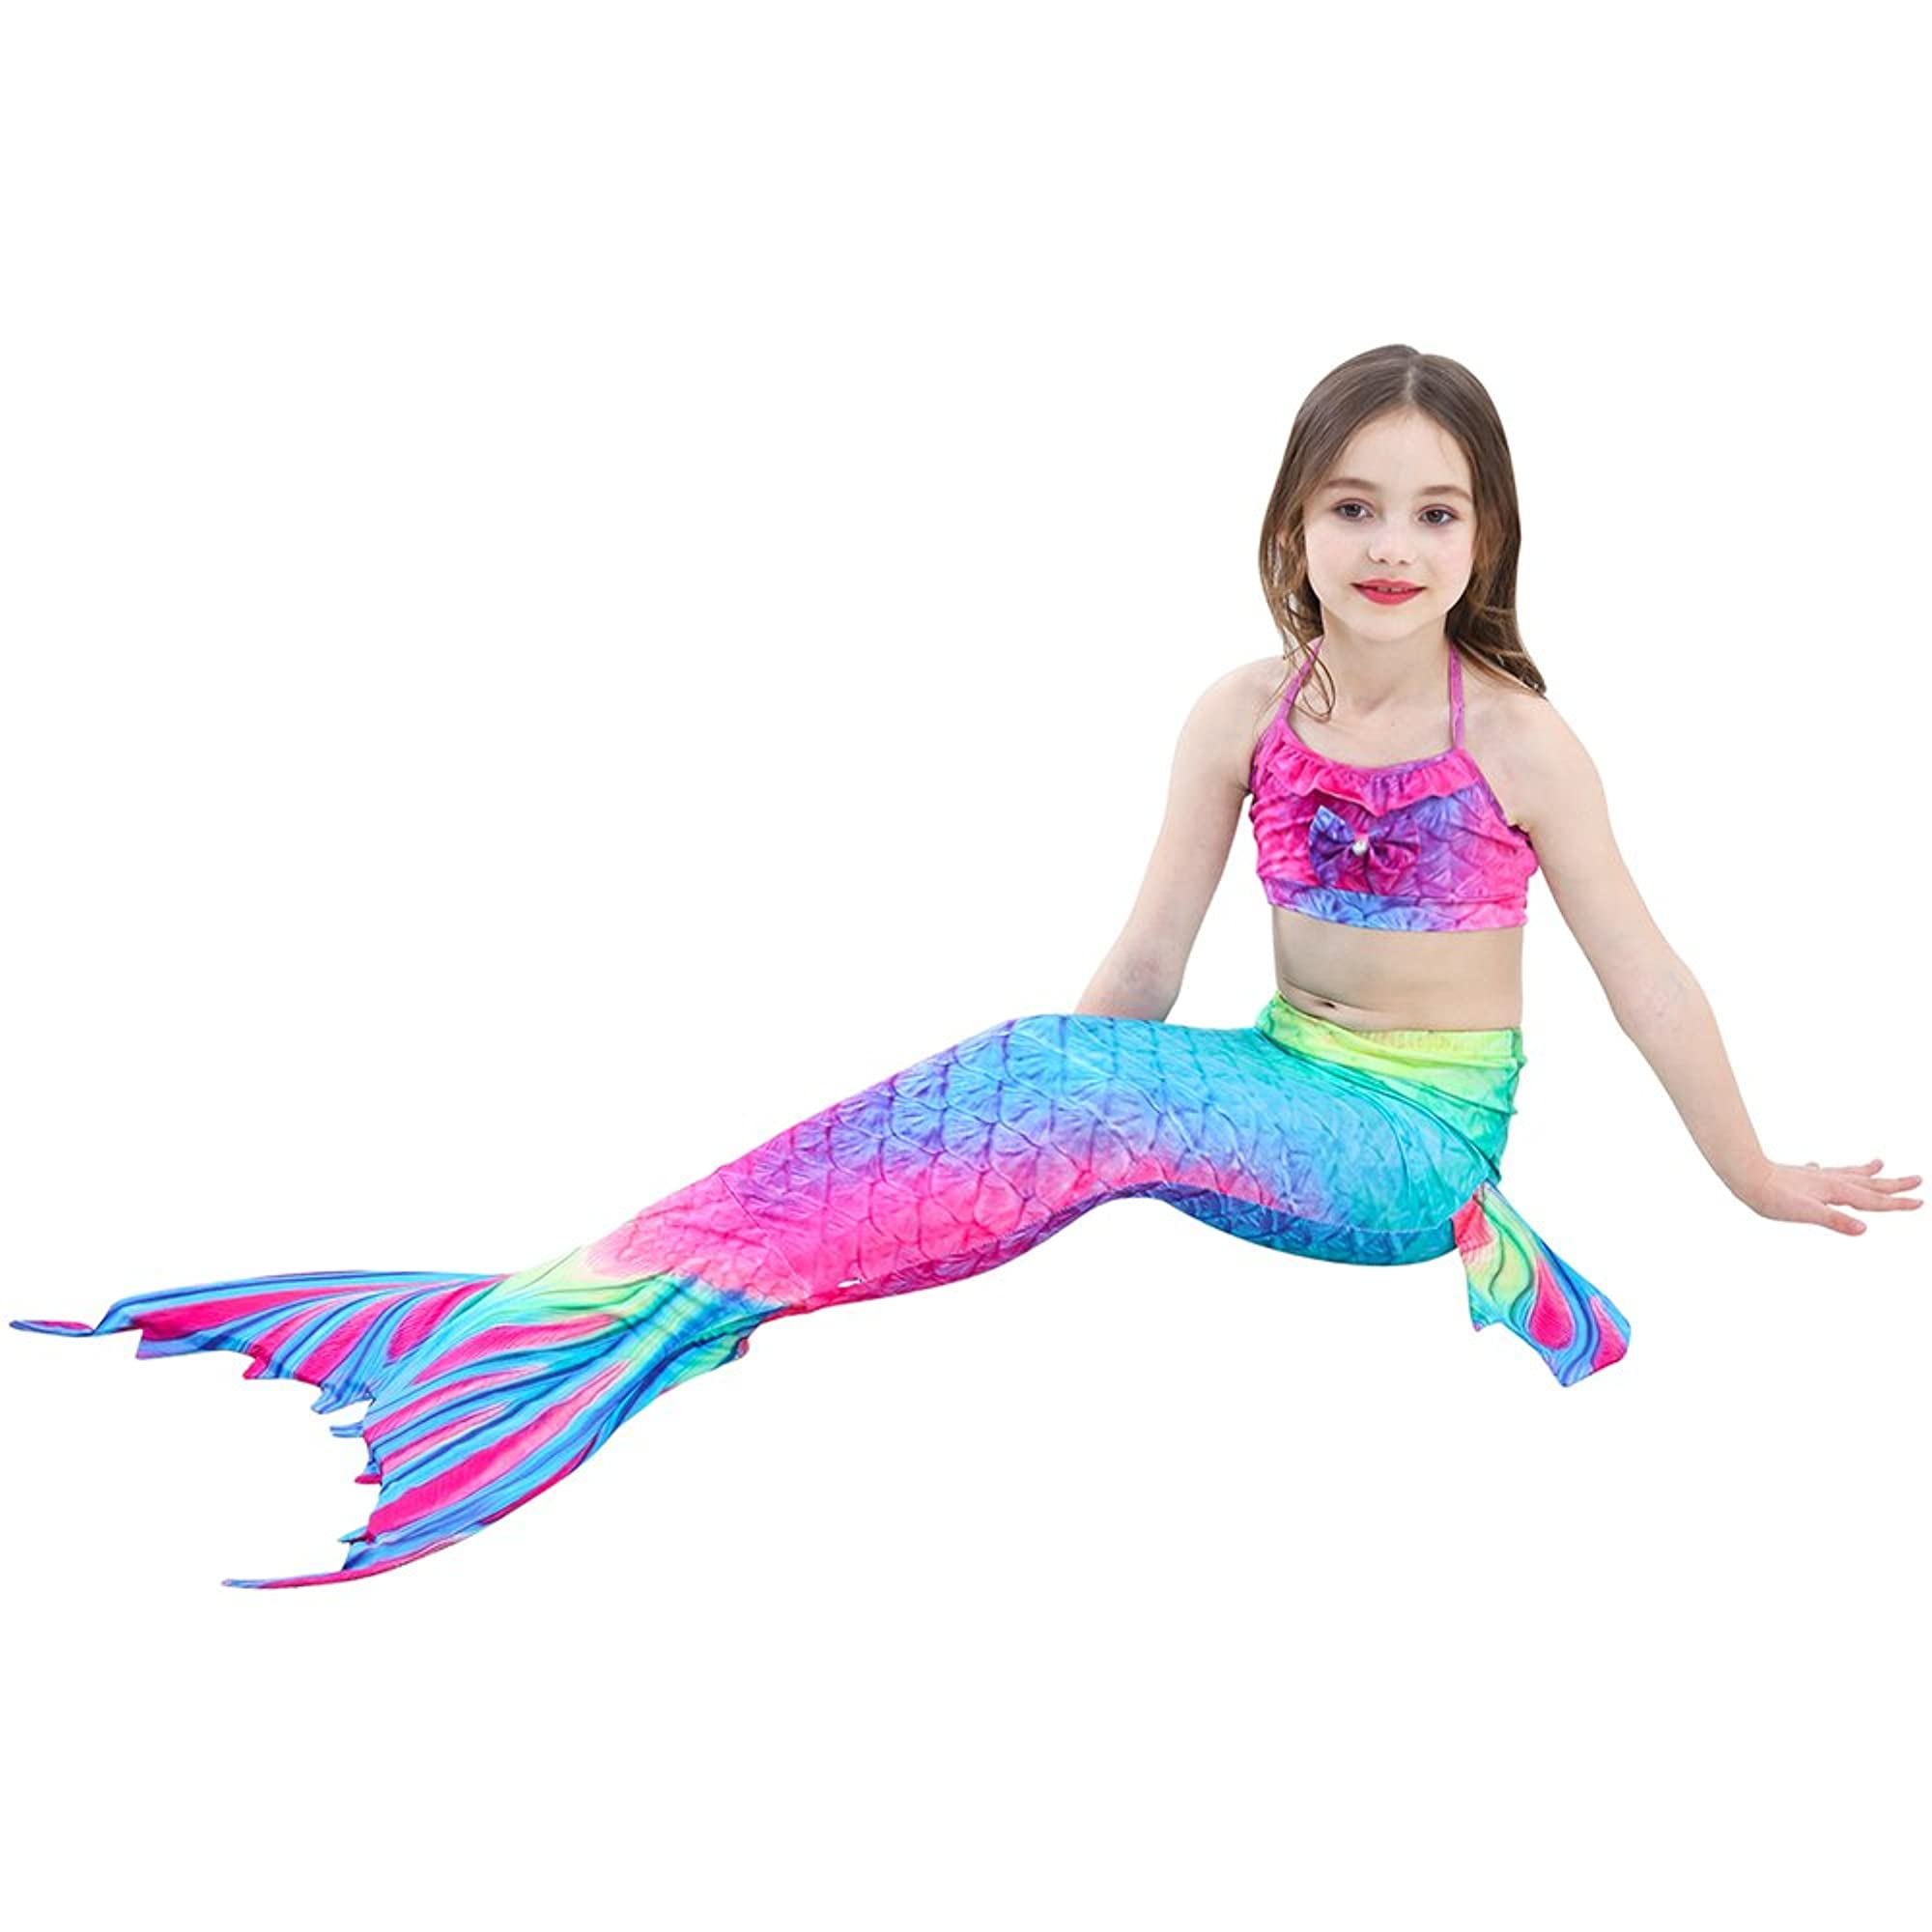 Mermaid Princess Costume Swimsuit For Girls